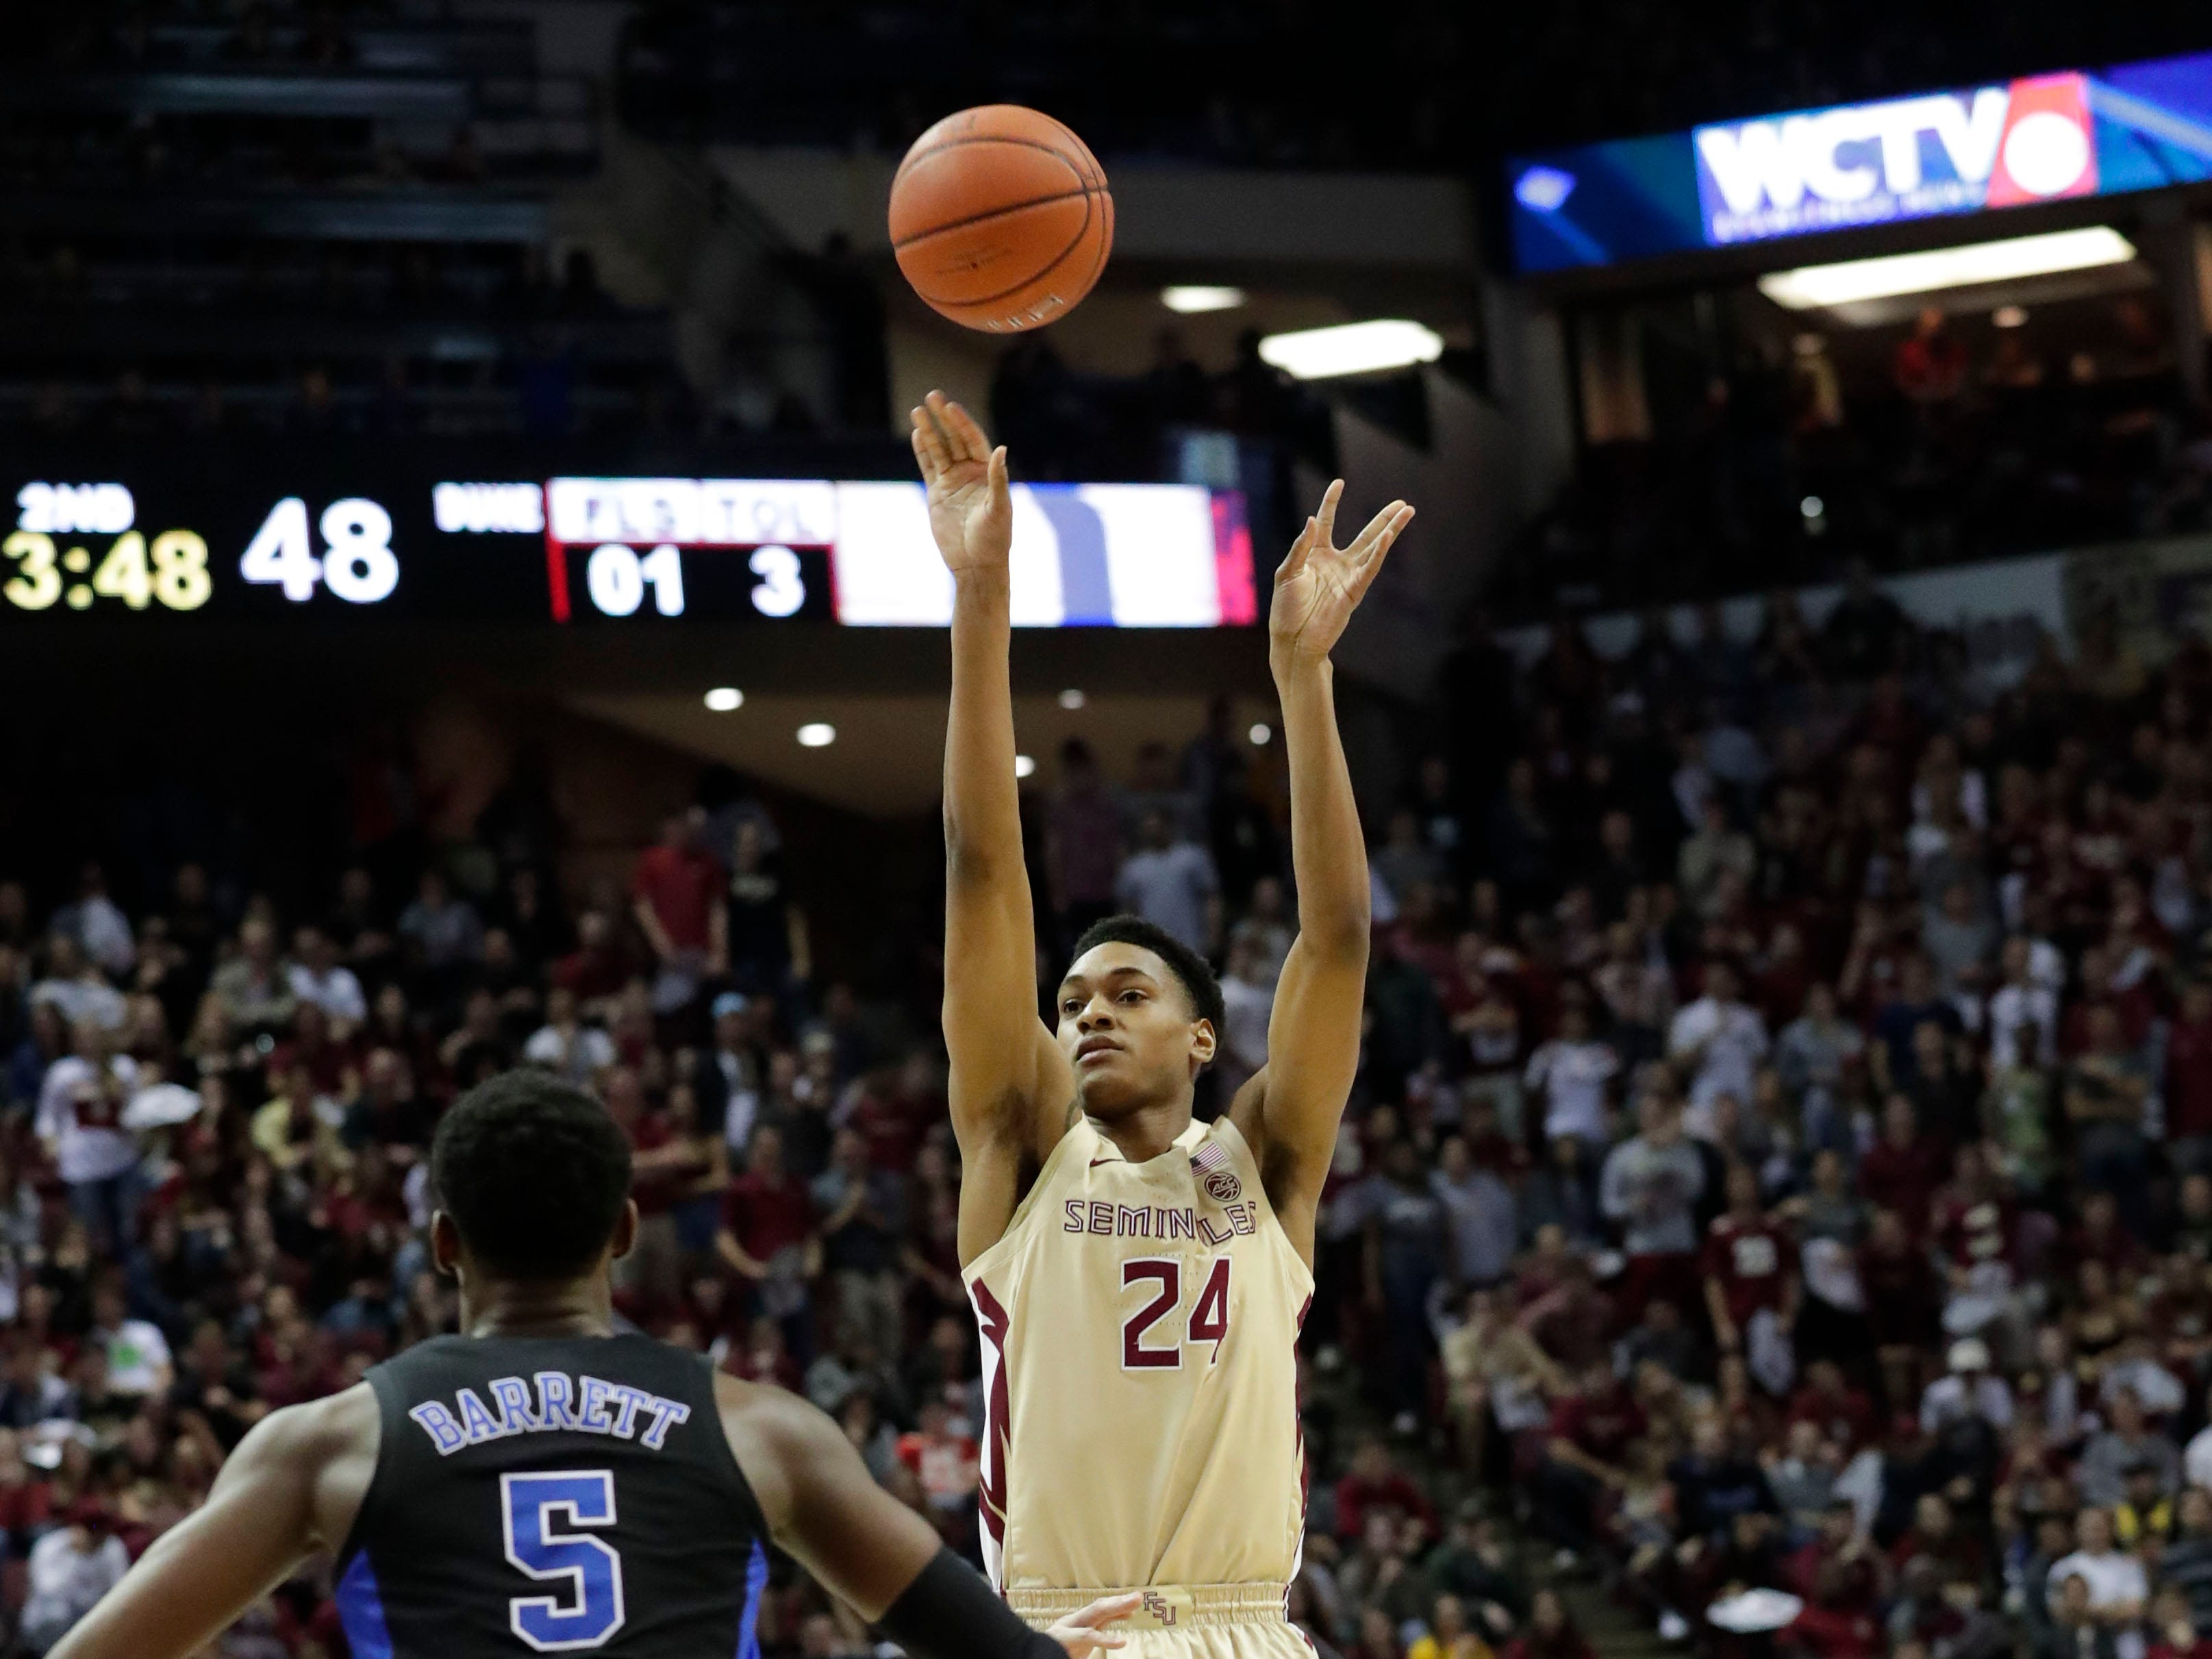 Florida State Seminoles guard Devin Vassell (24) shoots for three. Ranked 13 in the ACC, the Florida State Seminoles host the number 1 team, the Duke Blue Devils, at the Tucker Civic Center, Saturday, Jan. 12, 2019.